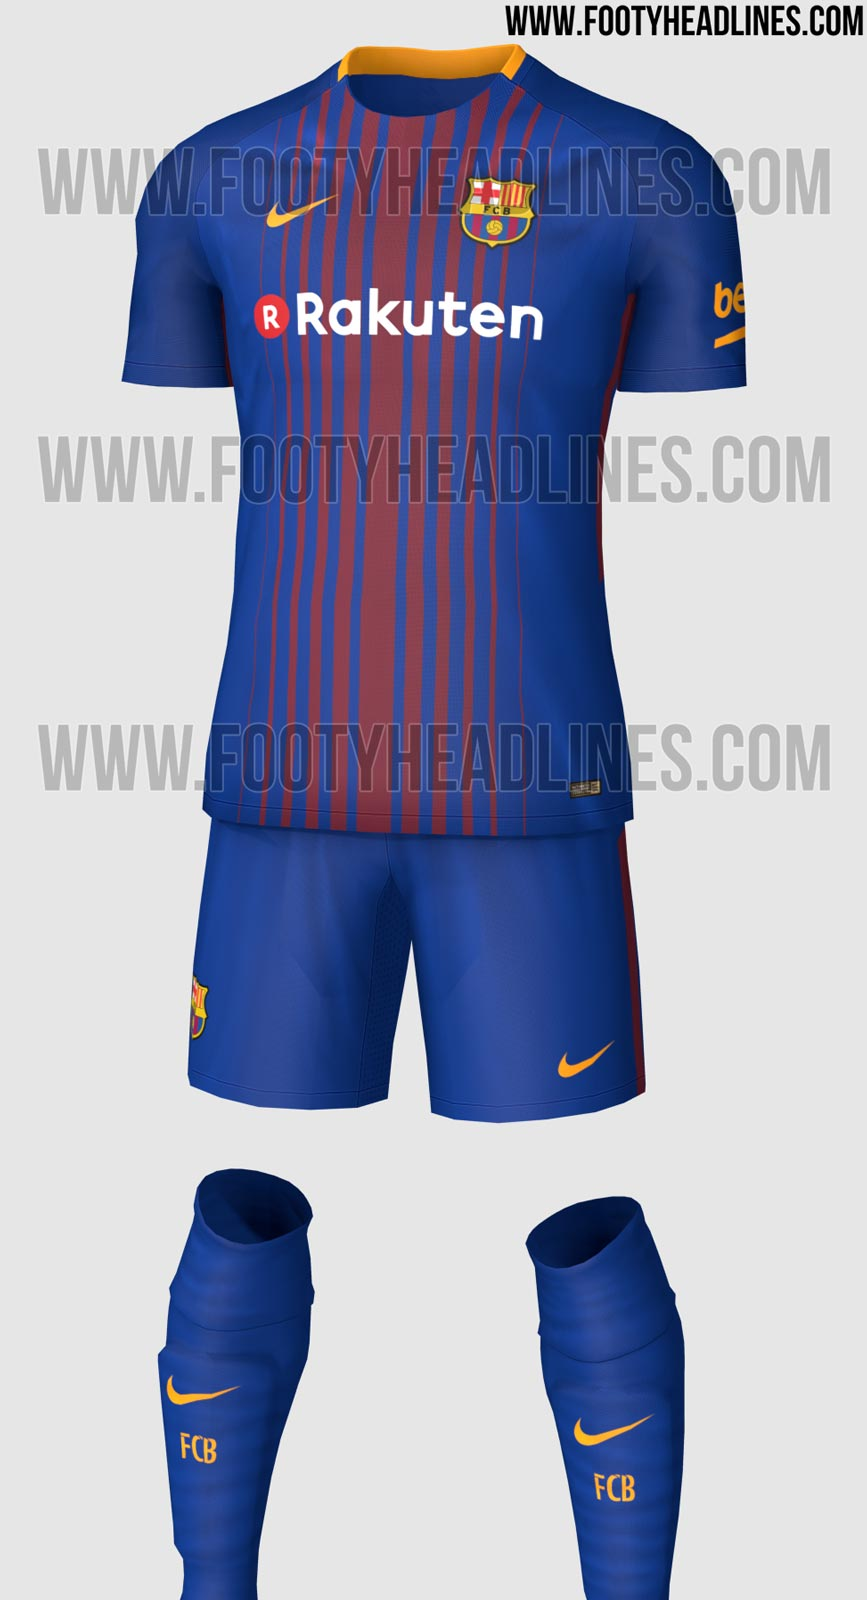 size 40 c34c4 0b909 Barcelona's new kit has leaked, and it's extremely blue ...